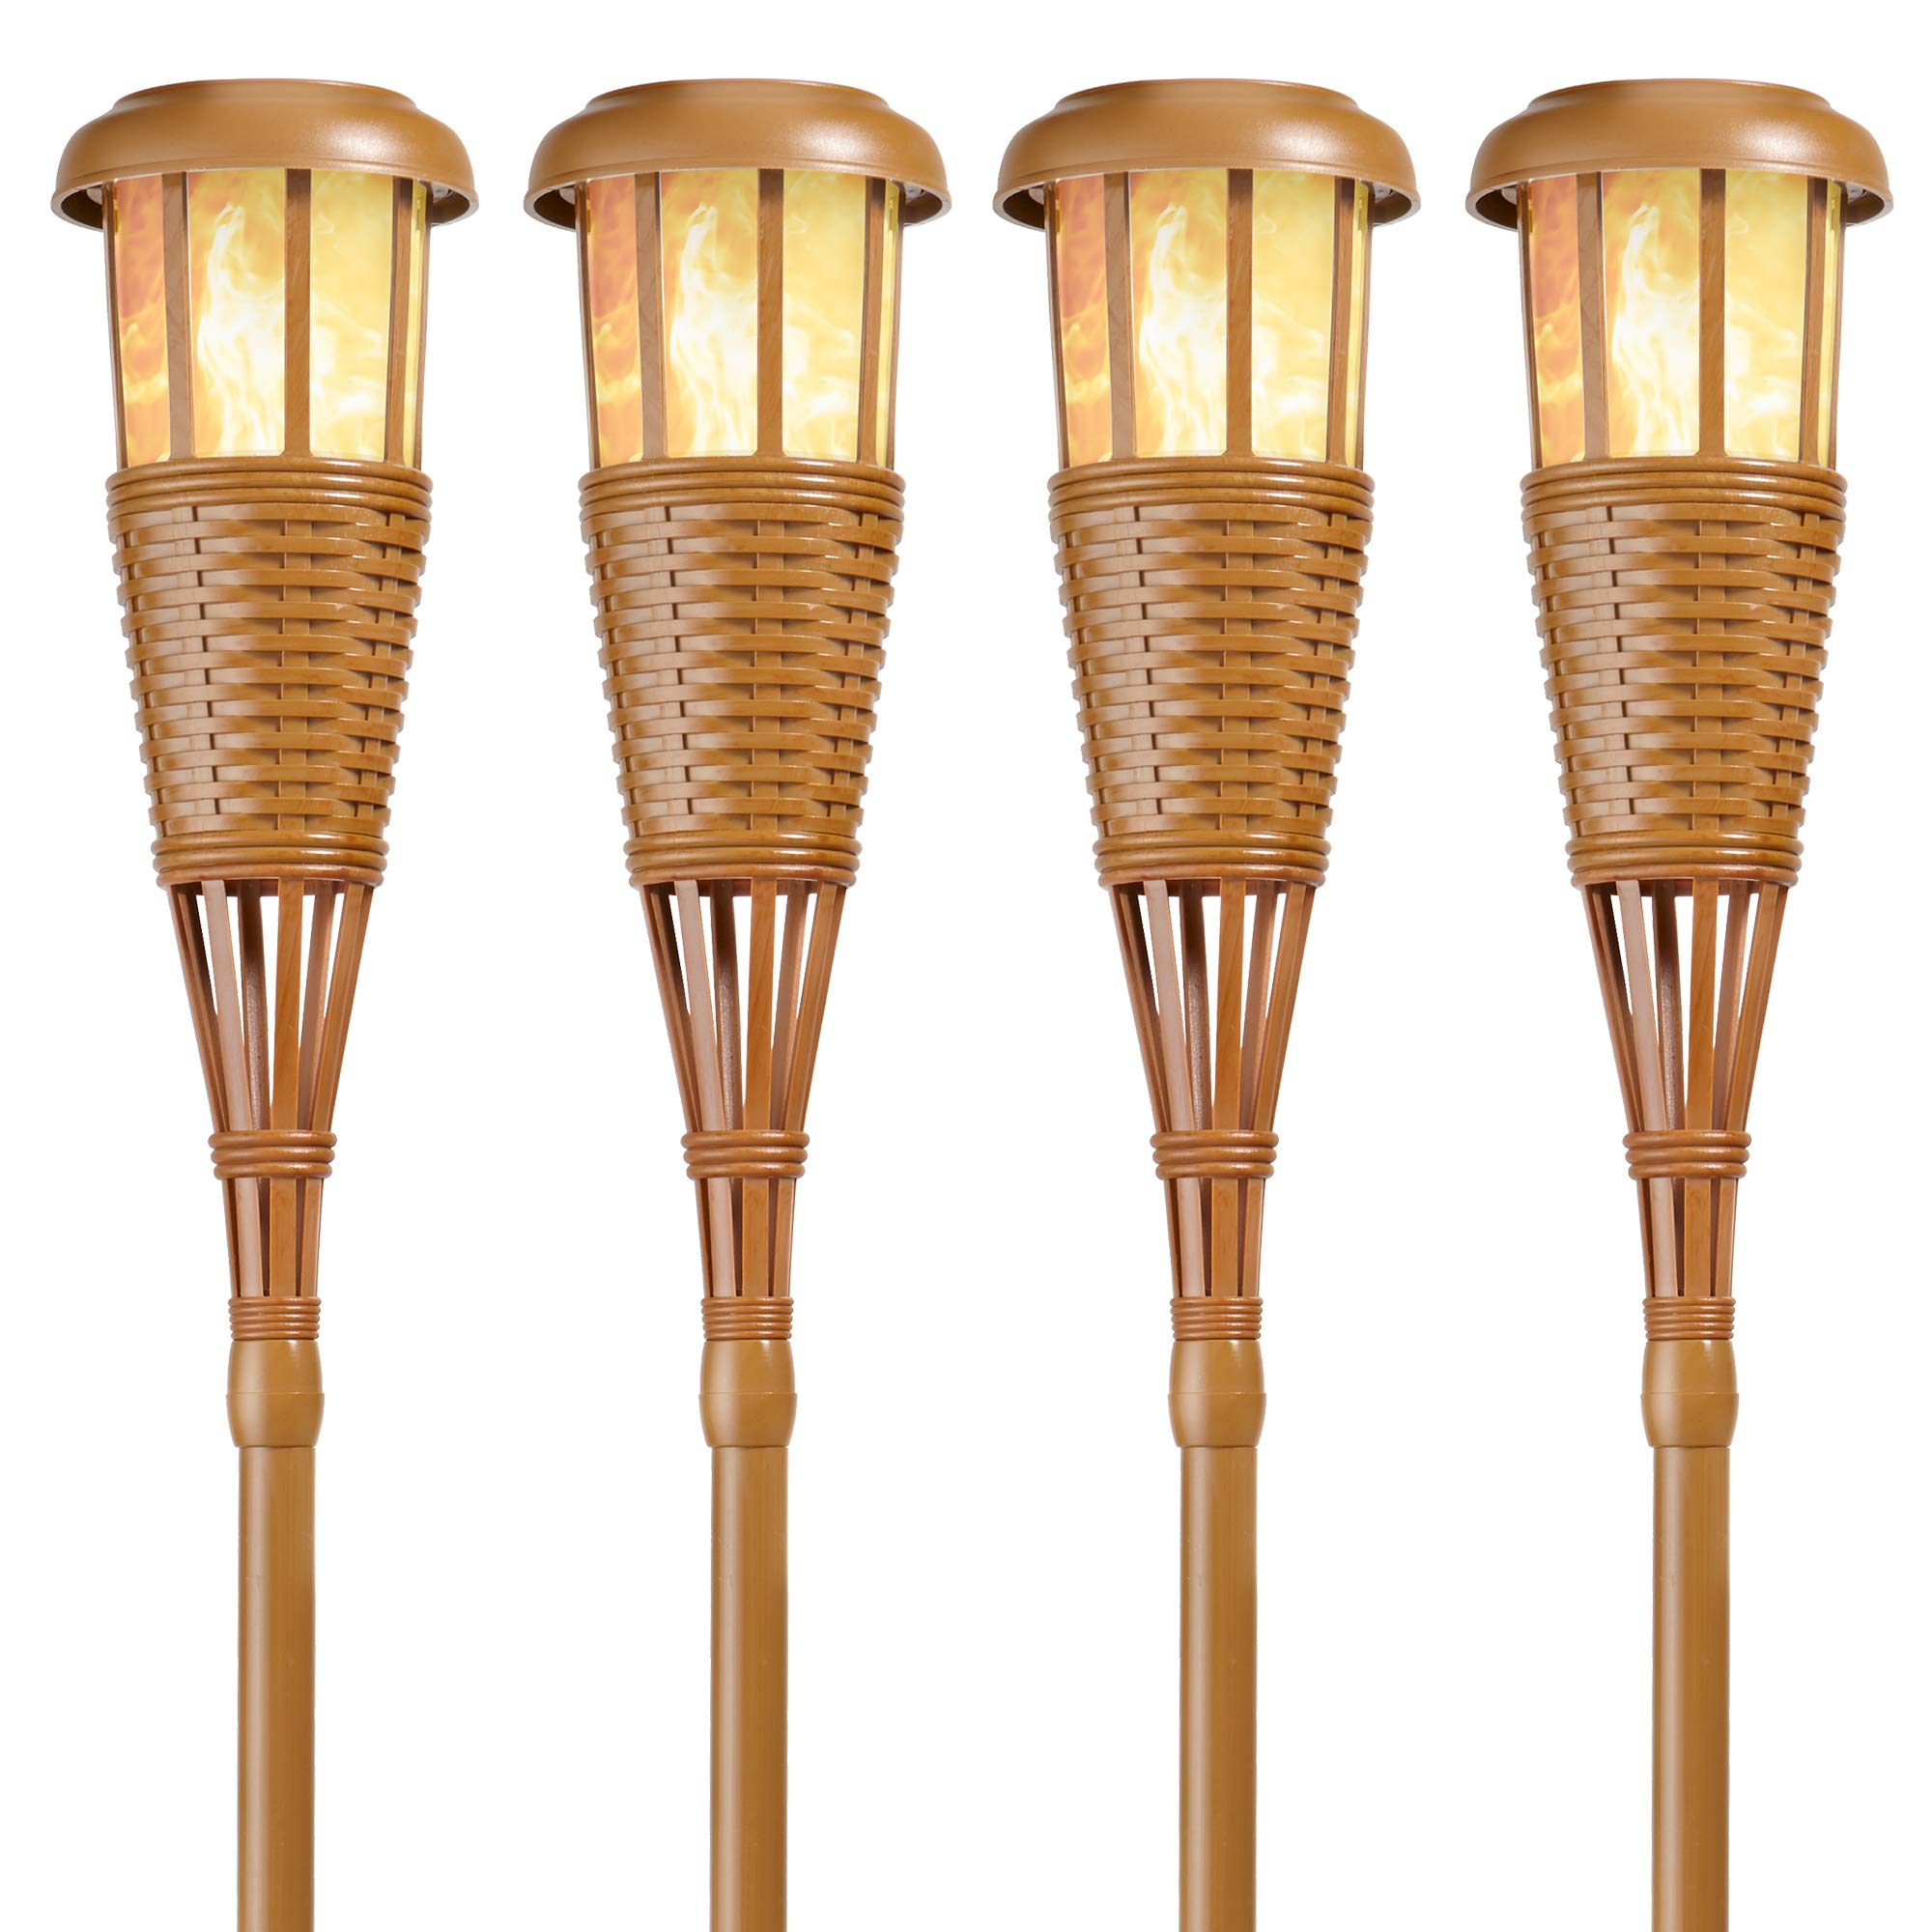 Newhouse Lighting FLTORCH4 Solar-Powered Flickering Flame Outdoor Island Torches, 4-Pack, Bamboo by Newhouse Lighting